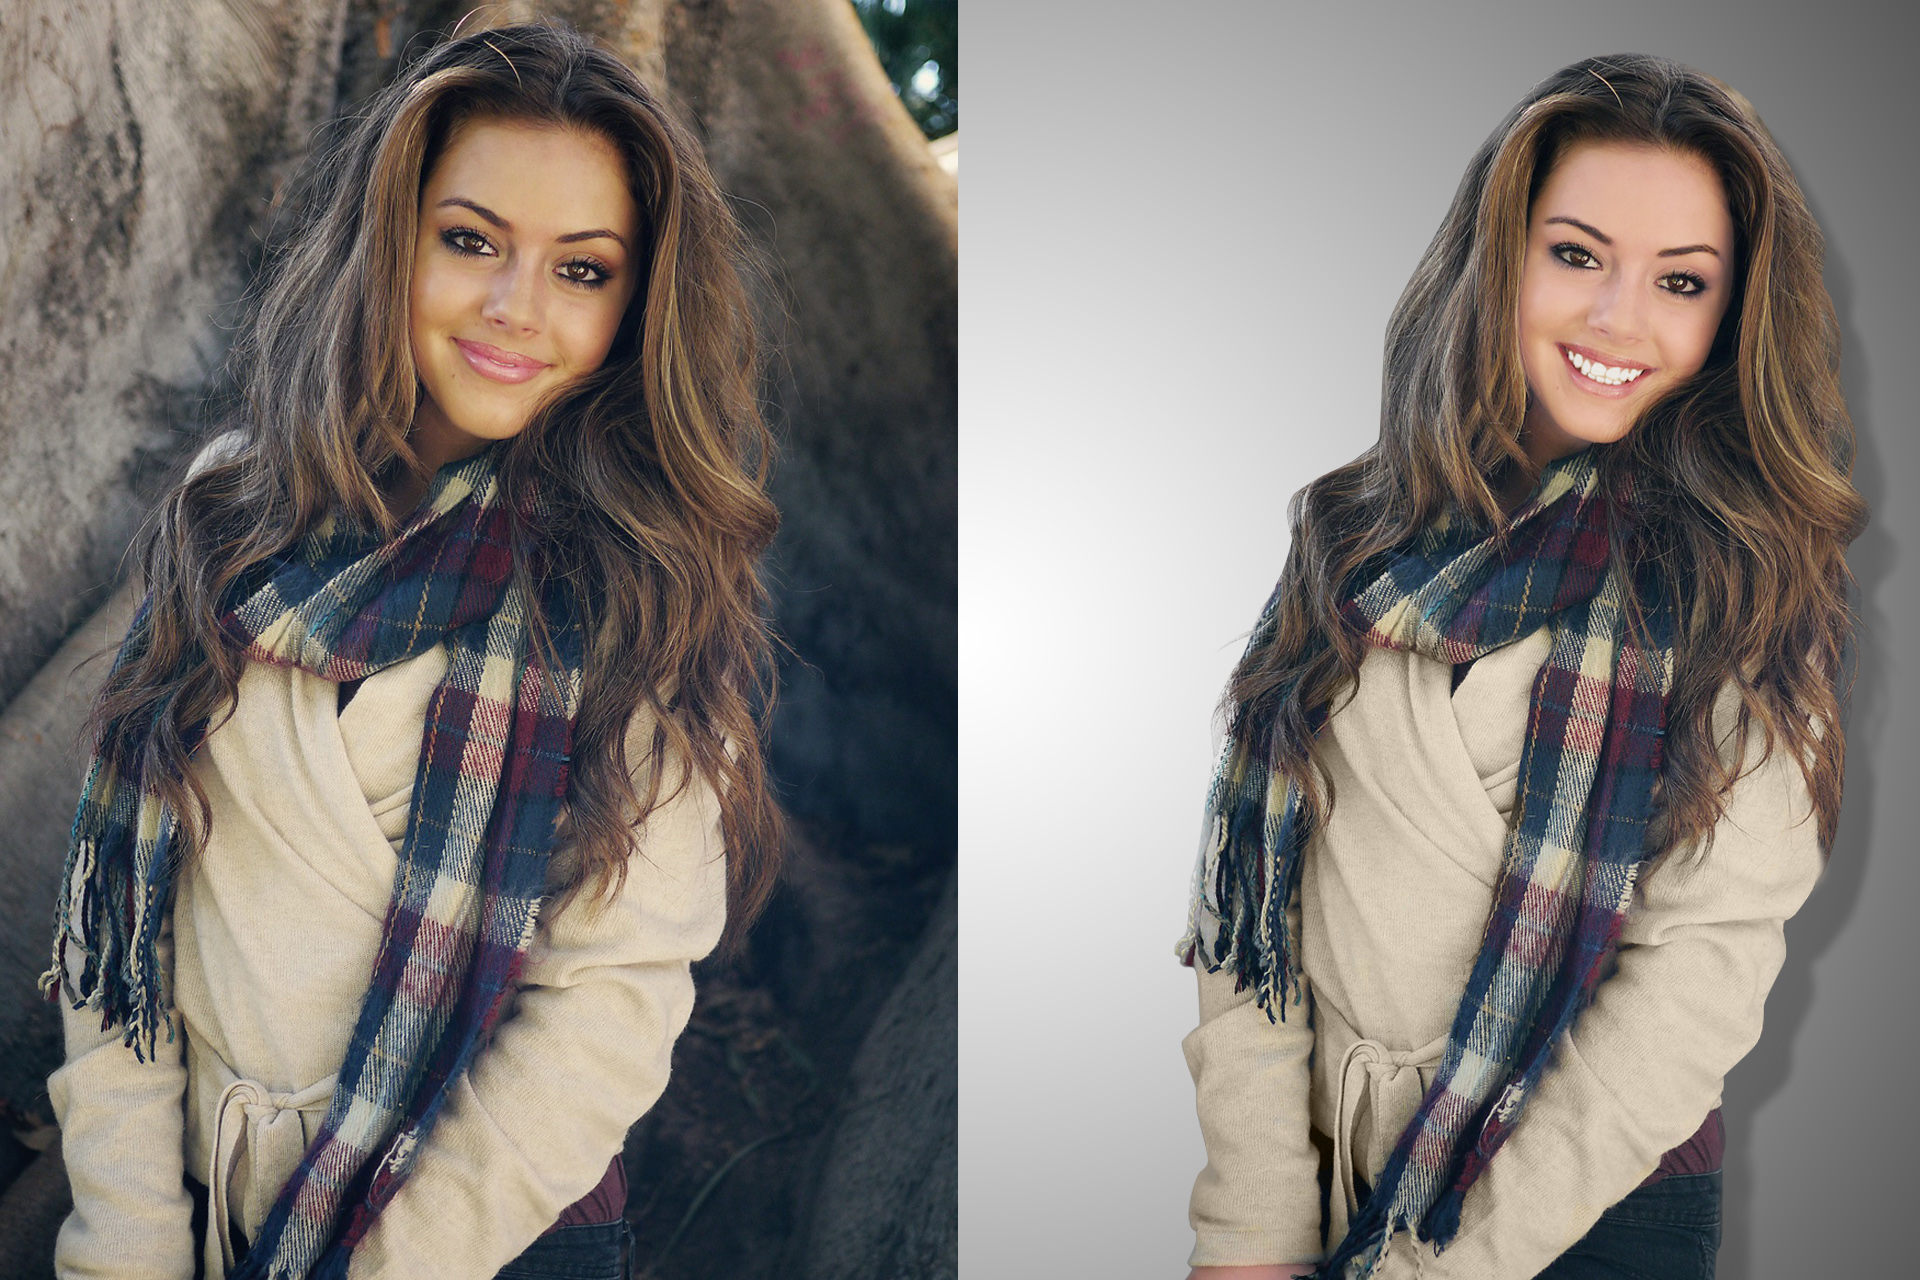 Image Restoration | Old and Damaged Photo Repair and Retouching